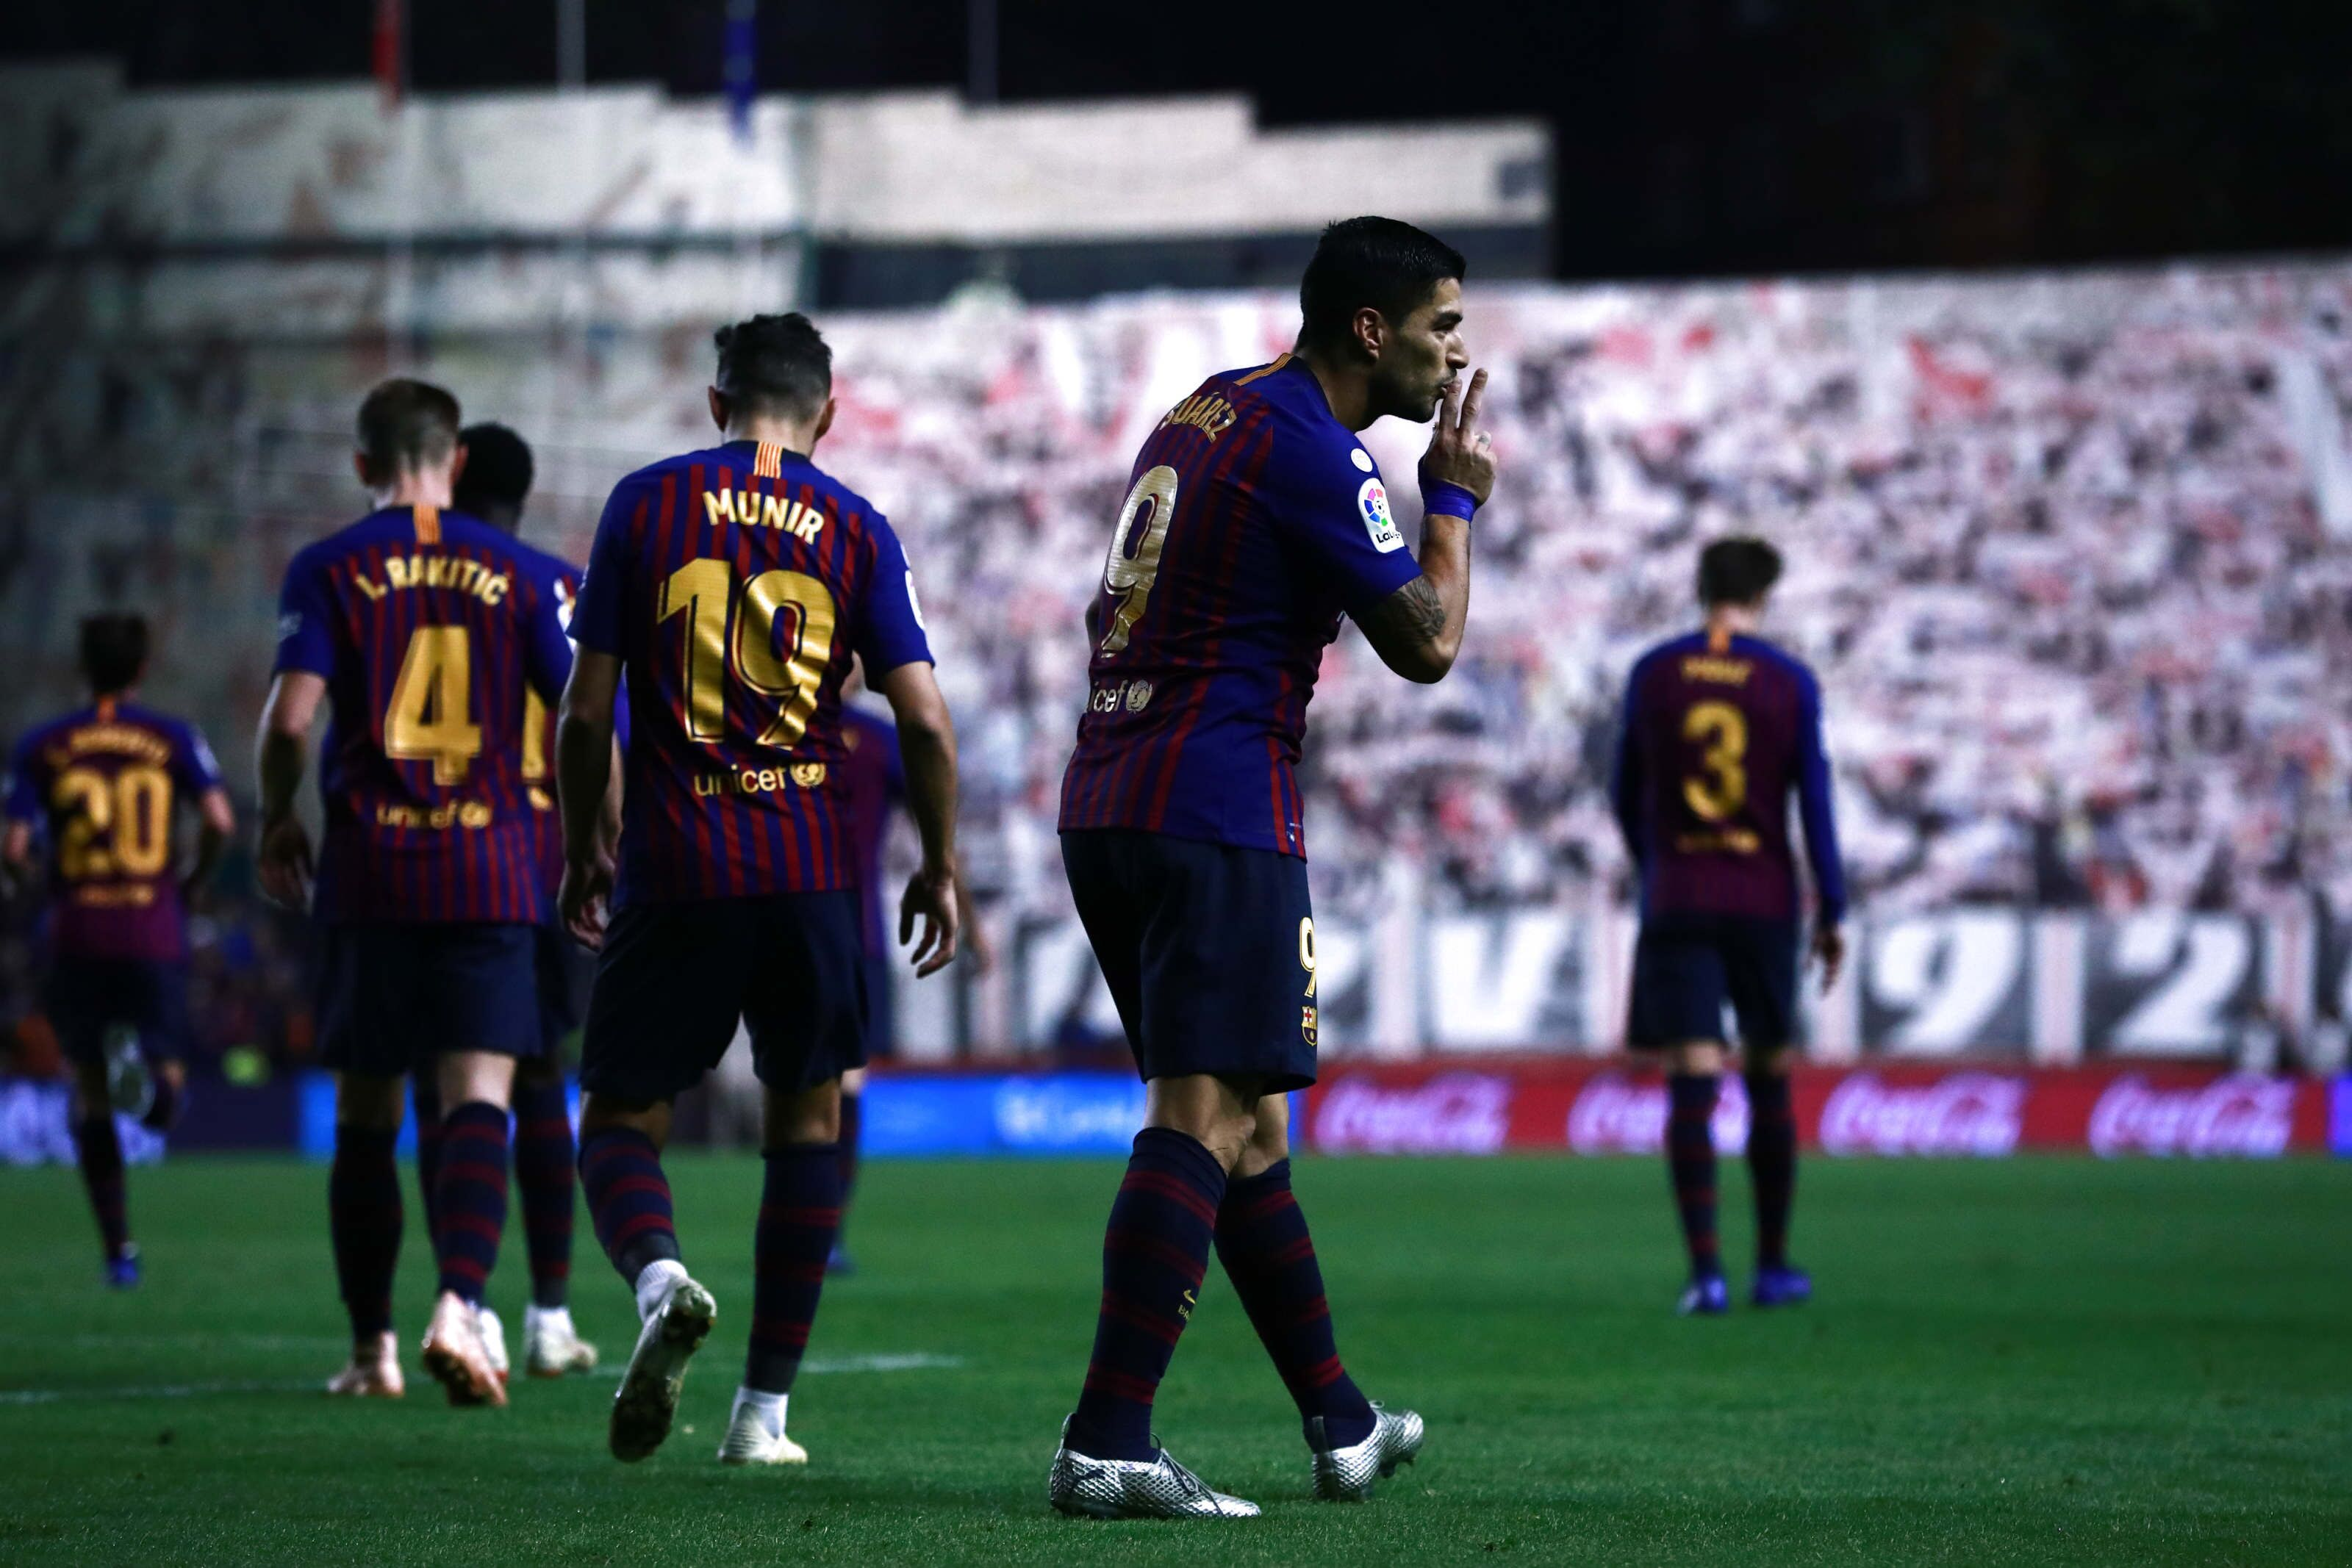 Without Lionel Messi, Barcelona have shown they're more than a one-man team